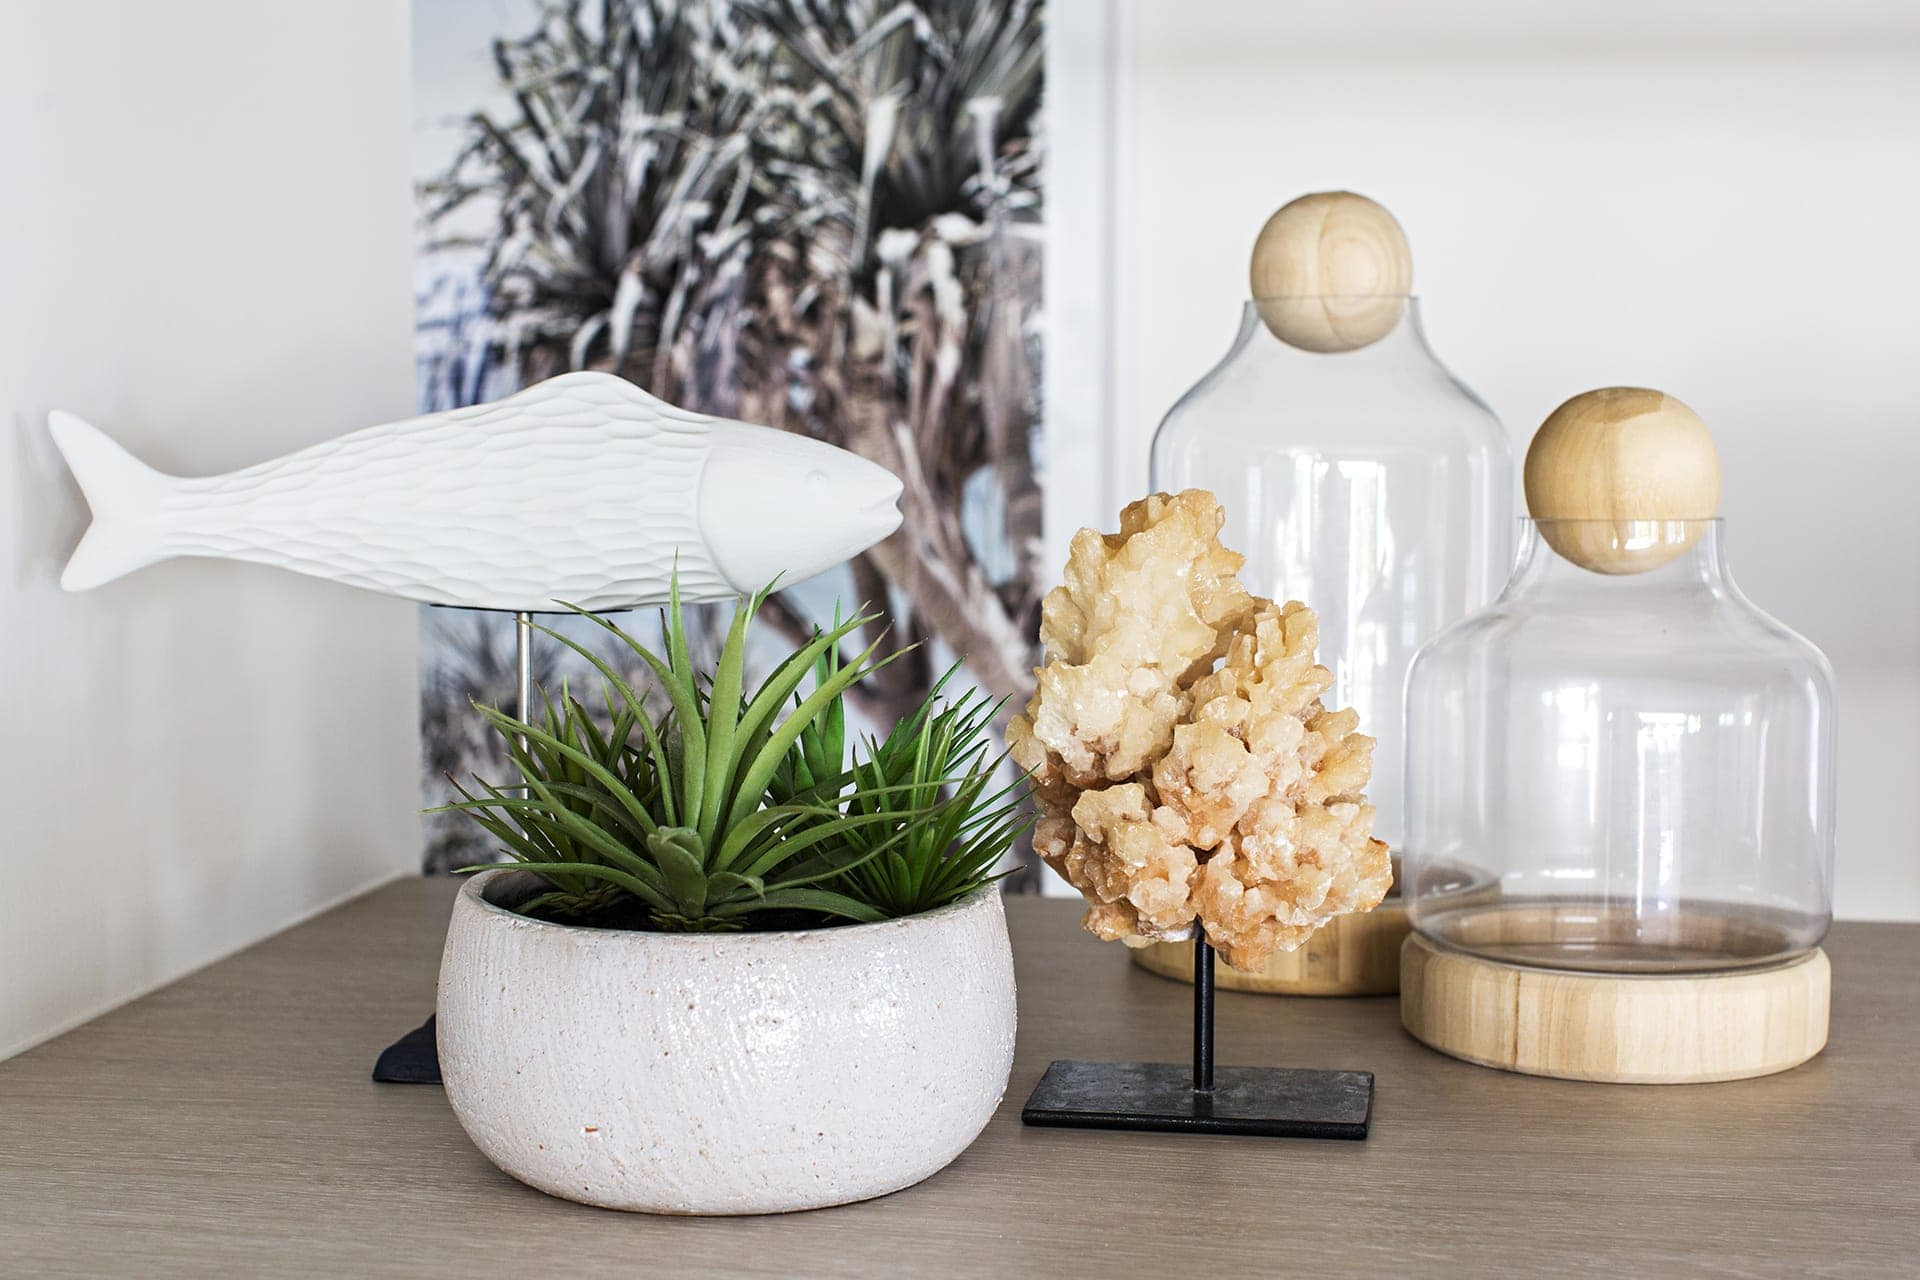 coastal styling with fake plant and glass dome and fish ornament